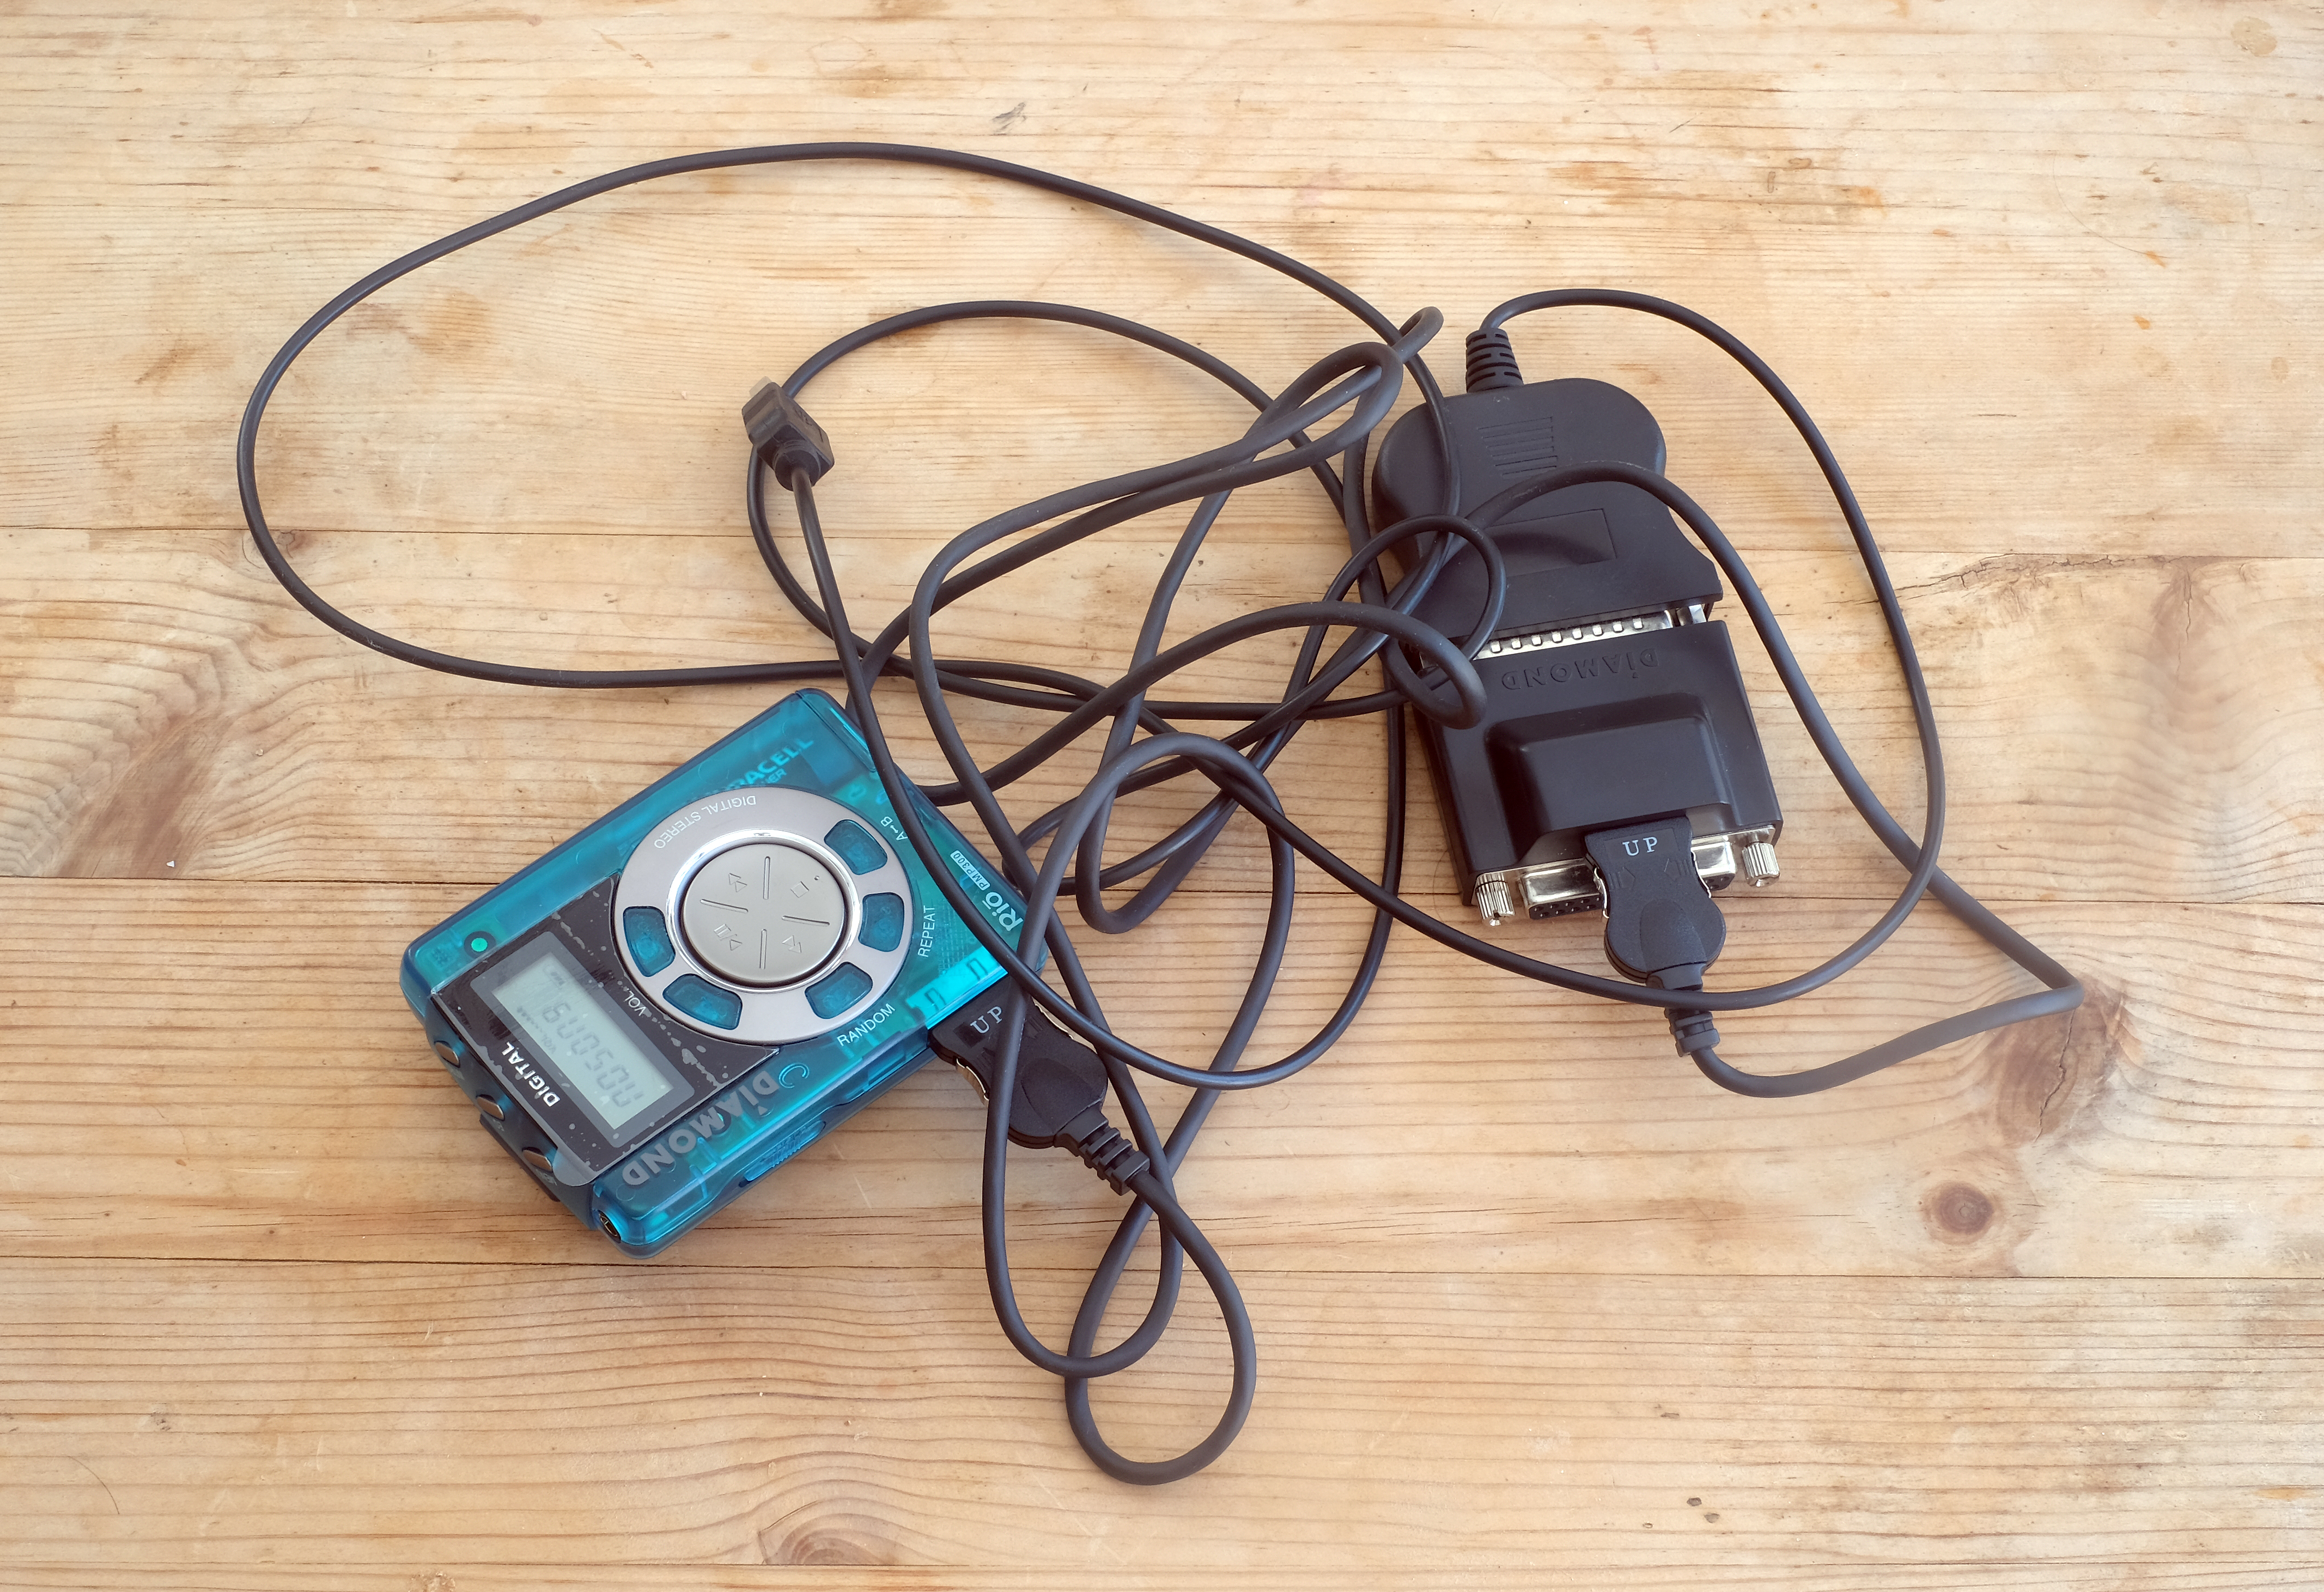 Even with the required USB-to-parallel-adapter cable, getting the PMP300 is to work on modern systems is a challenge.